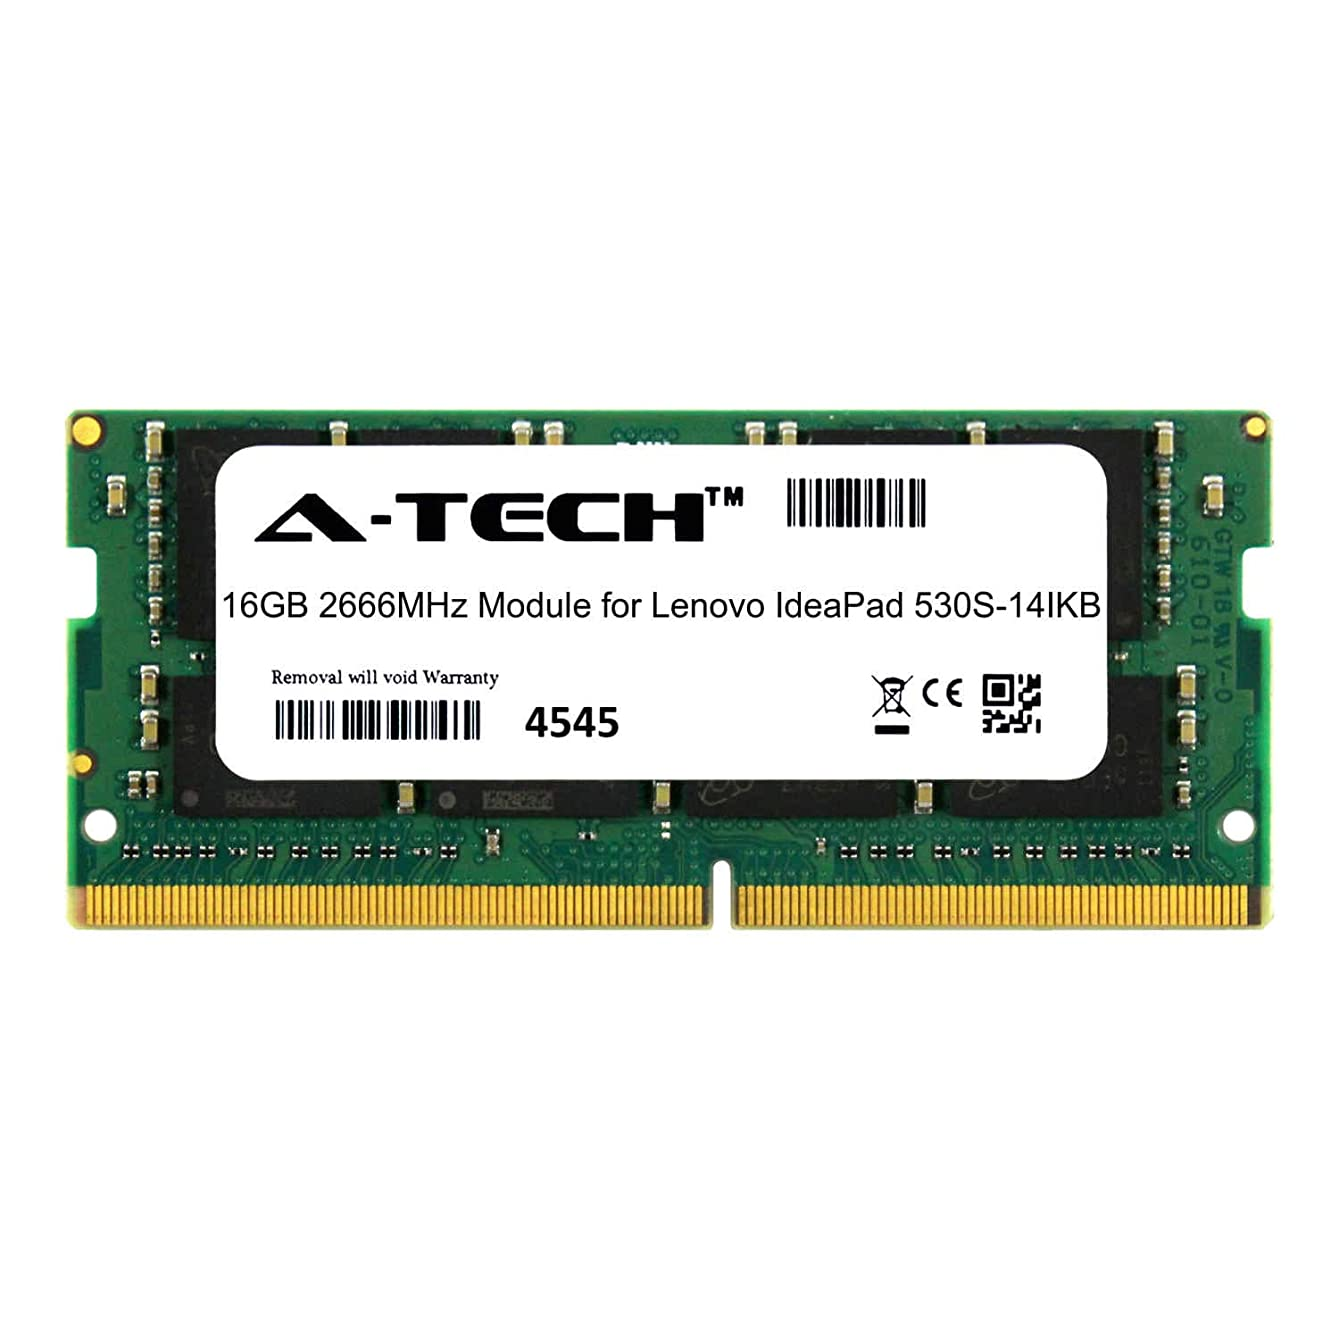 A-Tech 16GB Module for Lenovo IdeaPad 530S-14IKB Laptop & Notebook Compatible DDR4 2666Mhz Memory Ram (ATMS277112A25832X1) zpewjy487389